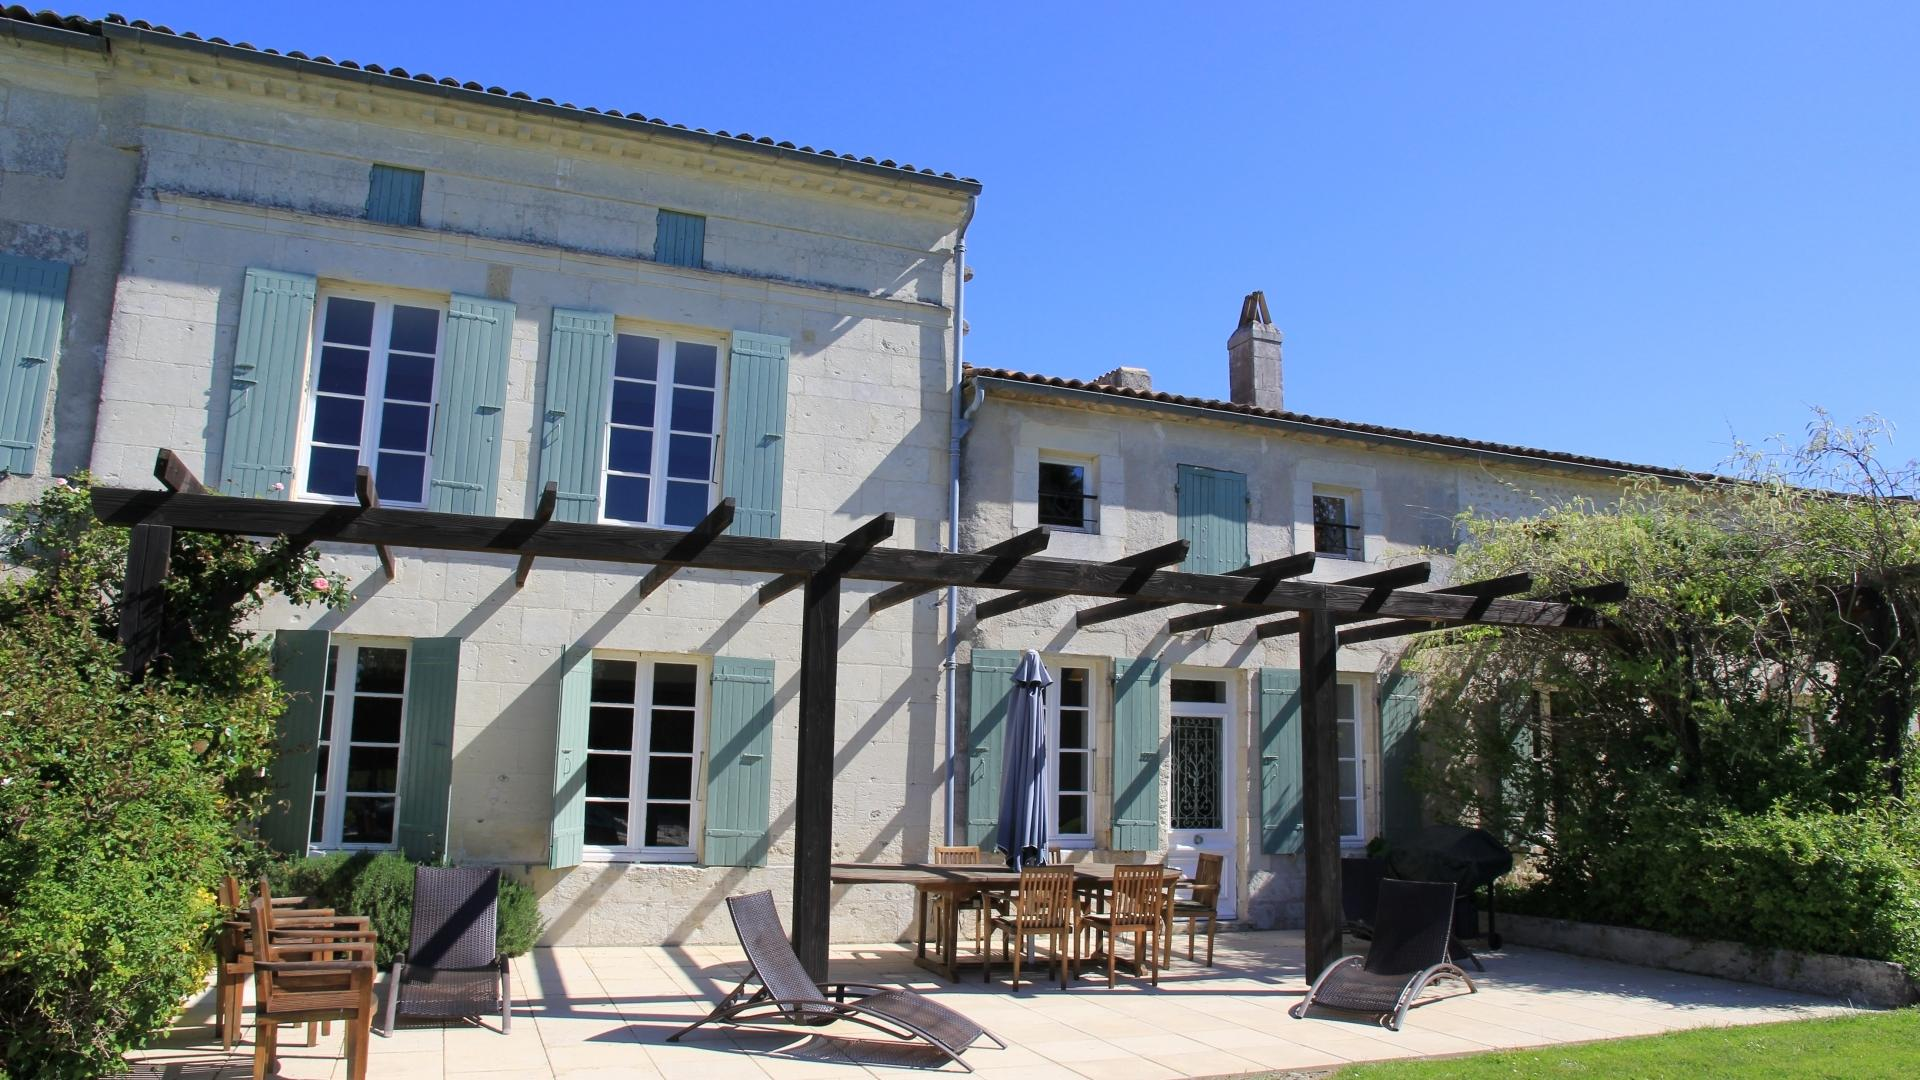 5 Bedroom Cottage/shared facilities in Poitou-Charentes, France